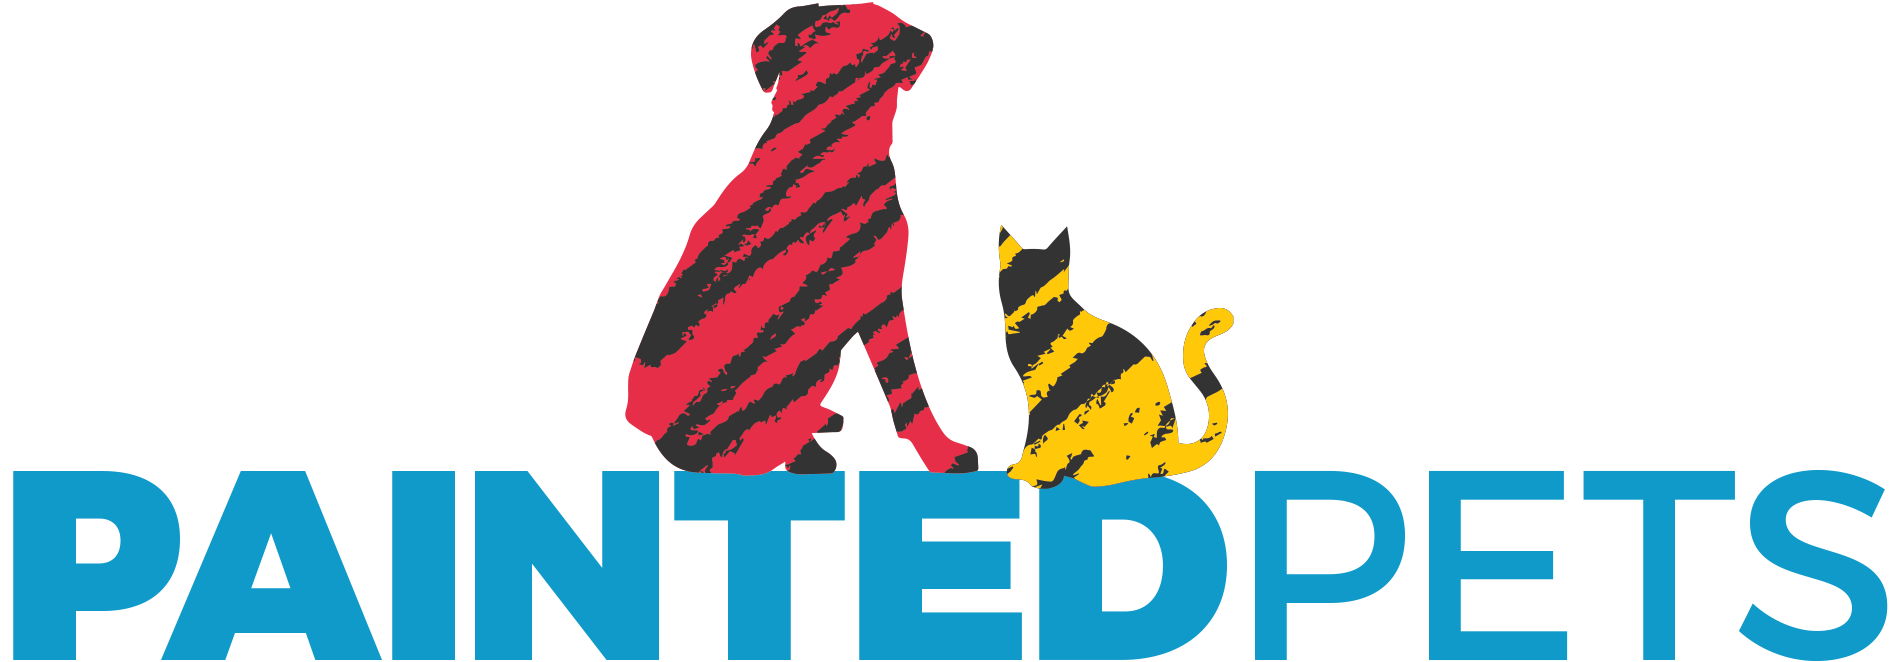 logo-painted-pets-2019